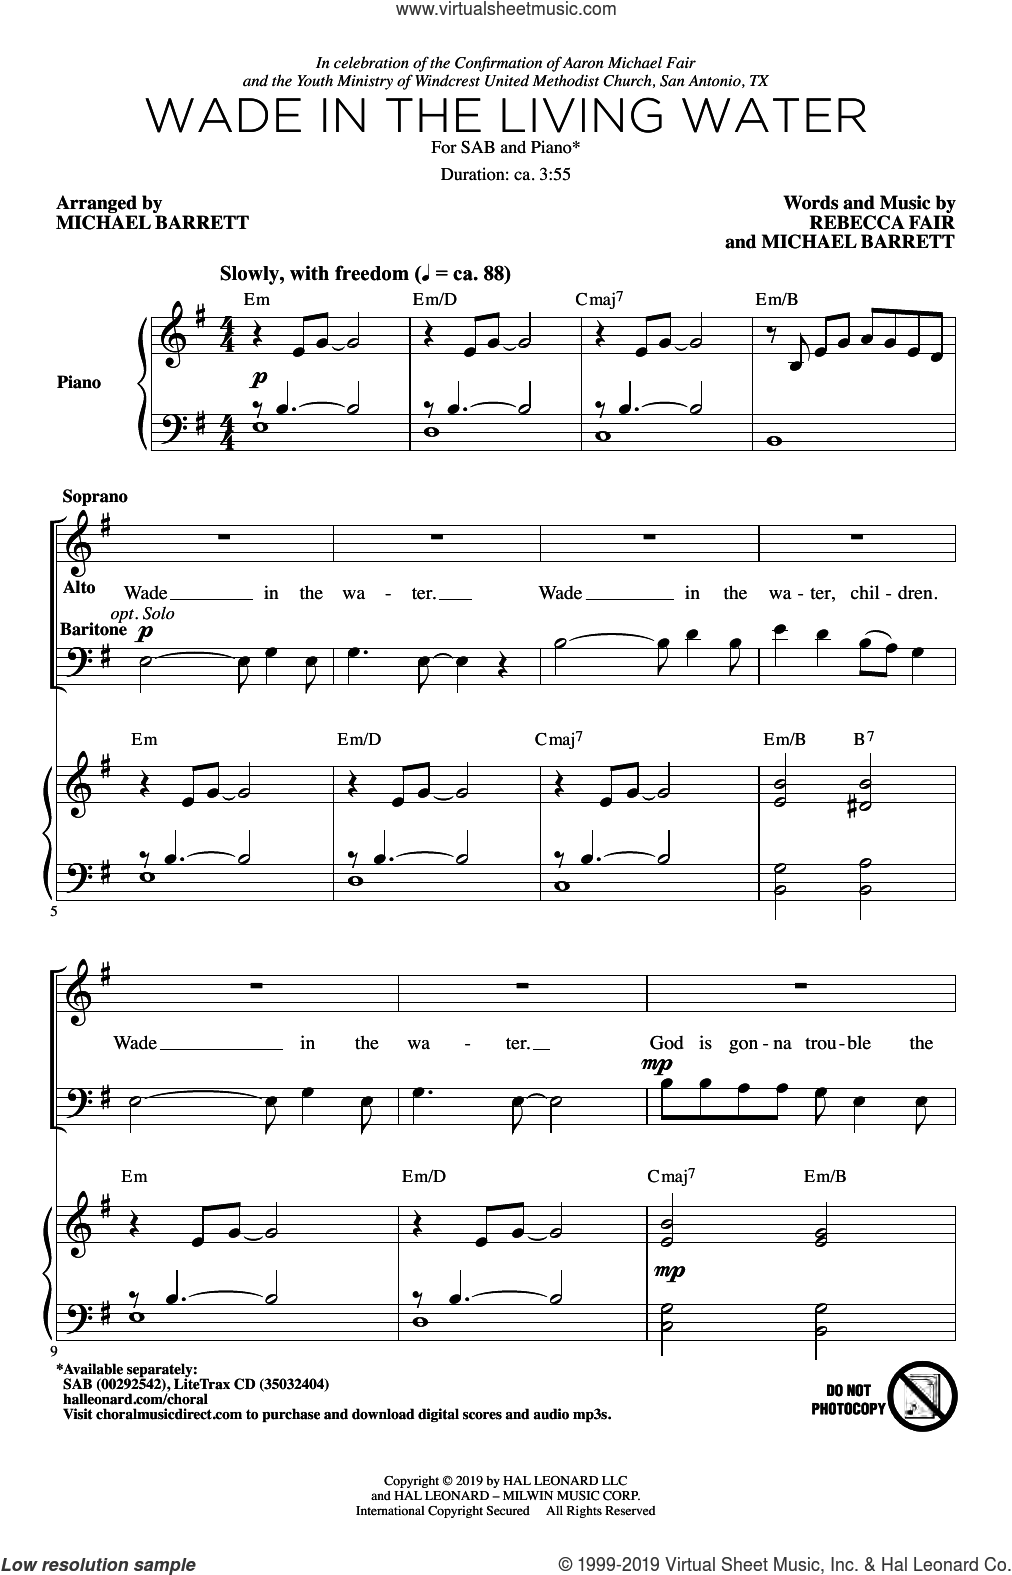 Wade In The Living Water sheet music for choir (SAB: soprano, alto, bass) by Michael Barrett, Rebecca Fair and Rebecca Fair & Michael Barrett, intermediate skill level